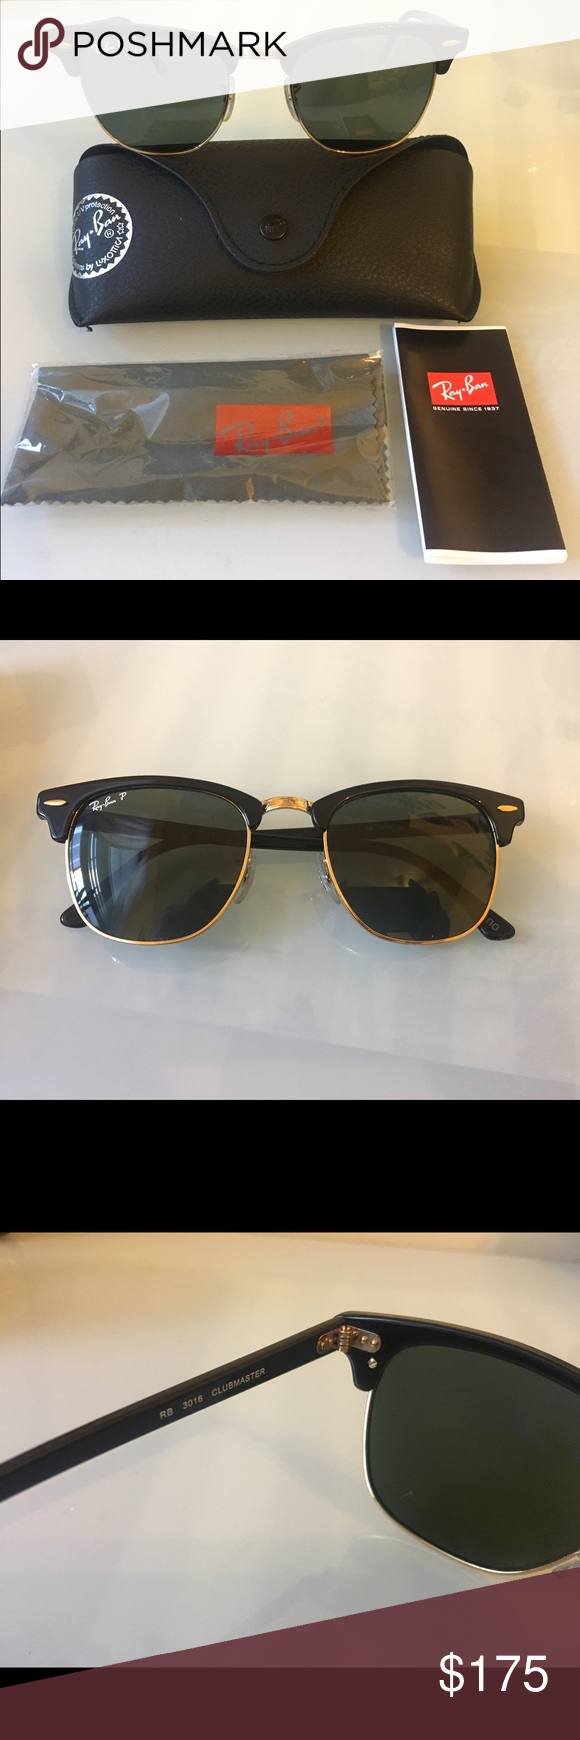 ray ban clubmaster small size  Original Ray Ban Polarized Clubmaster Sunglasses NWT